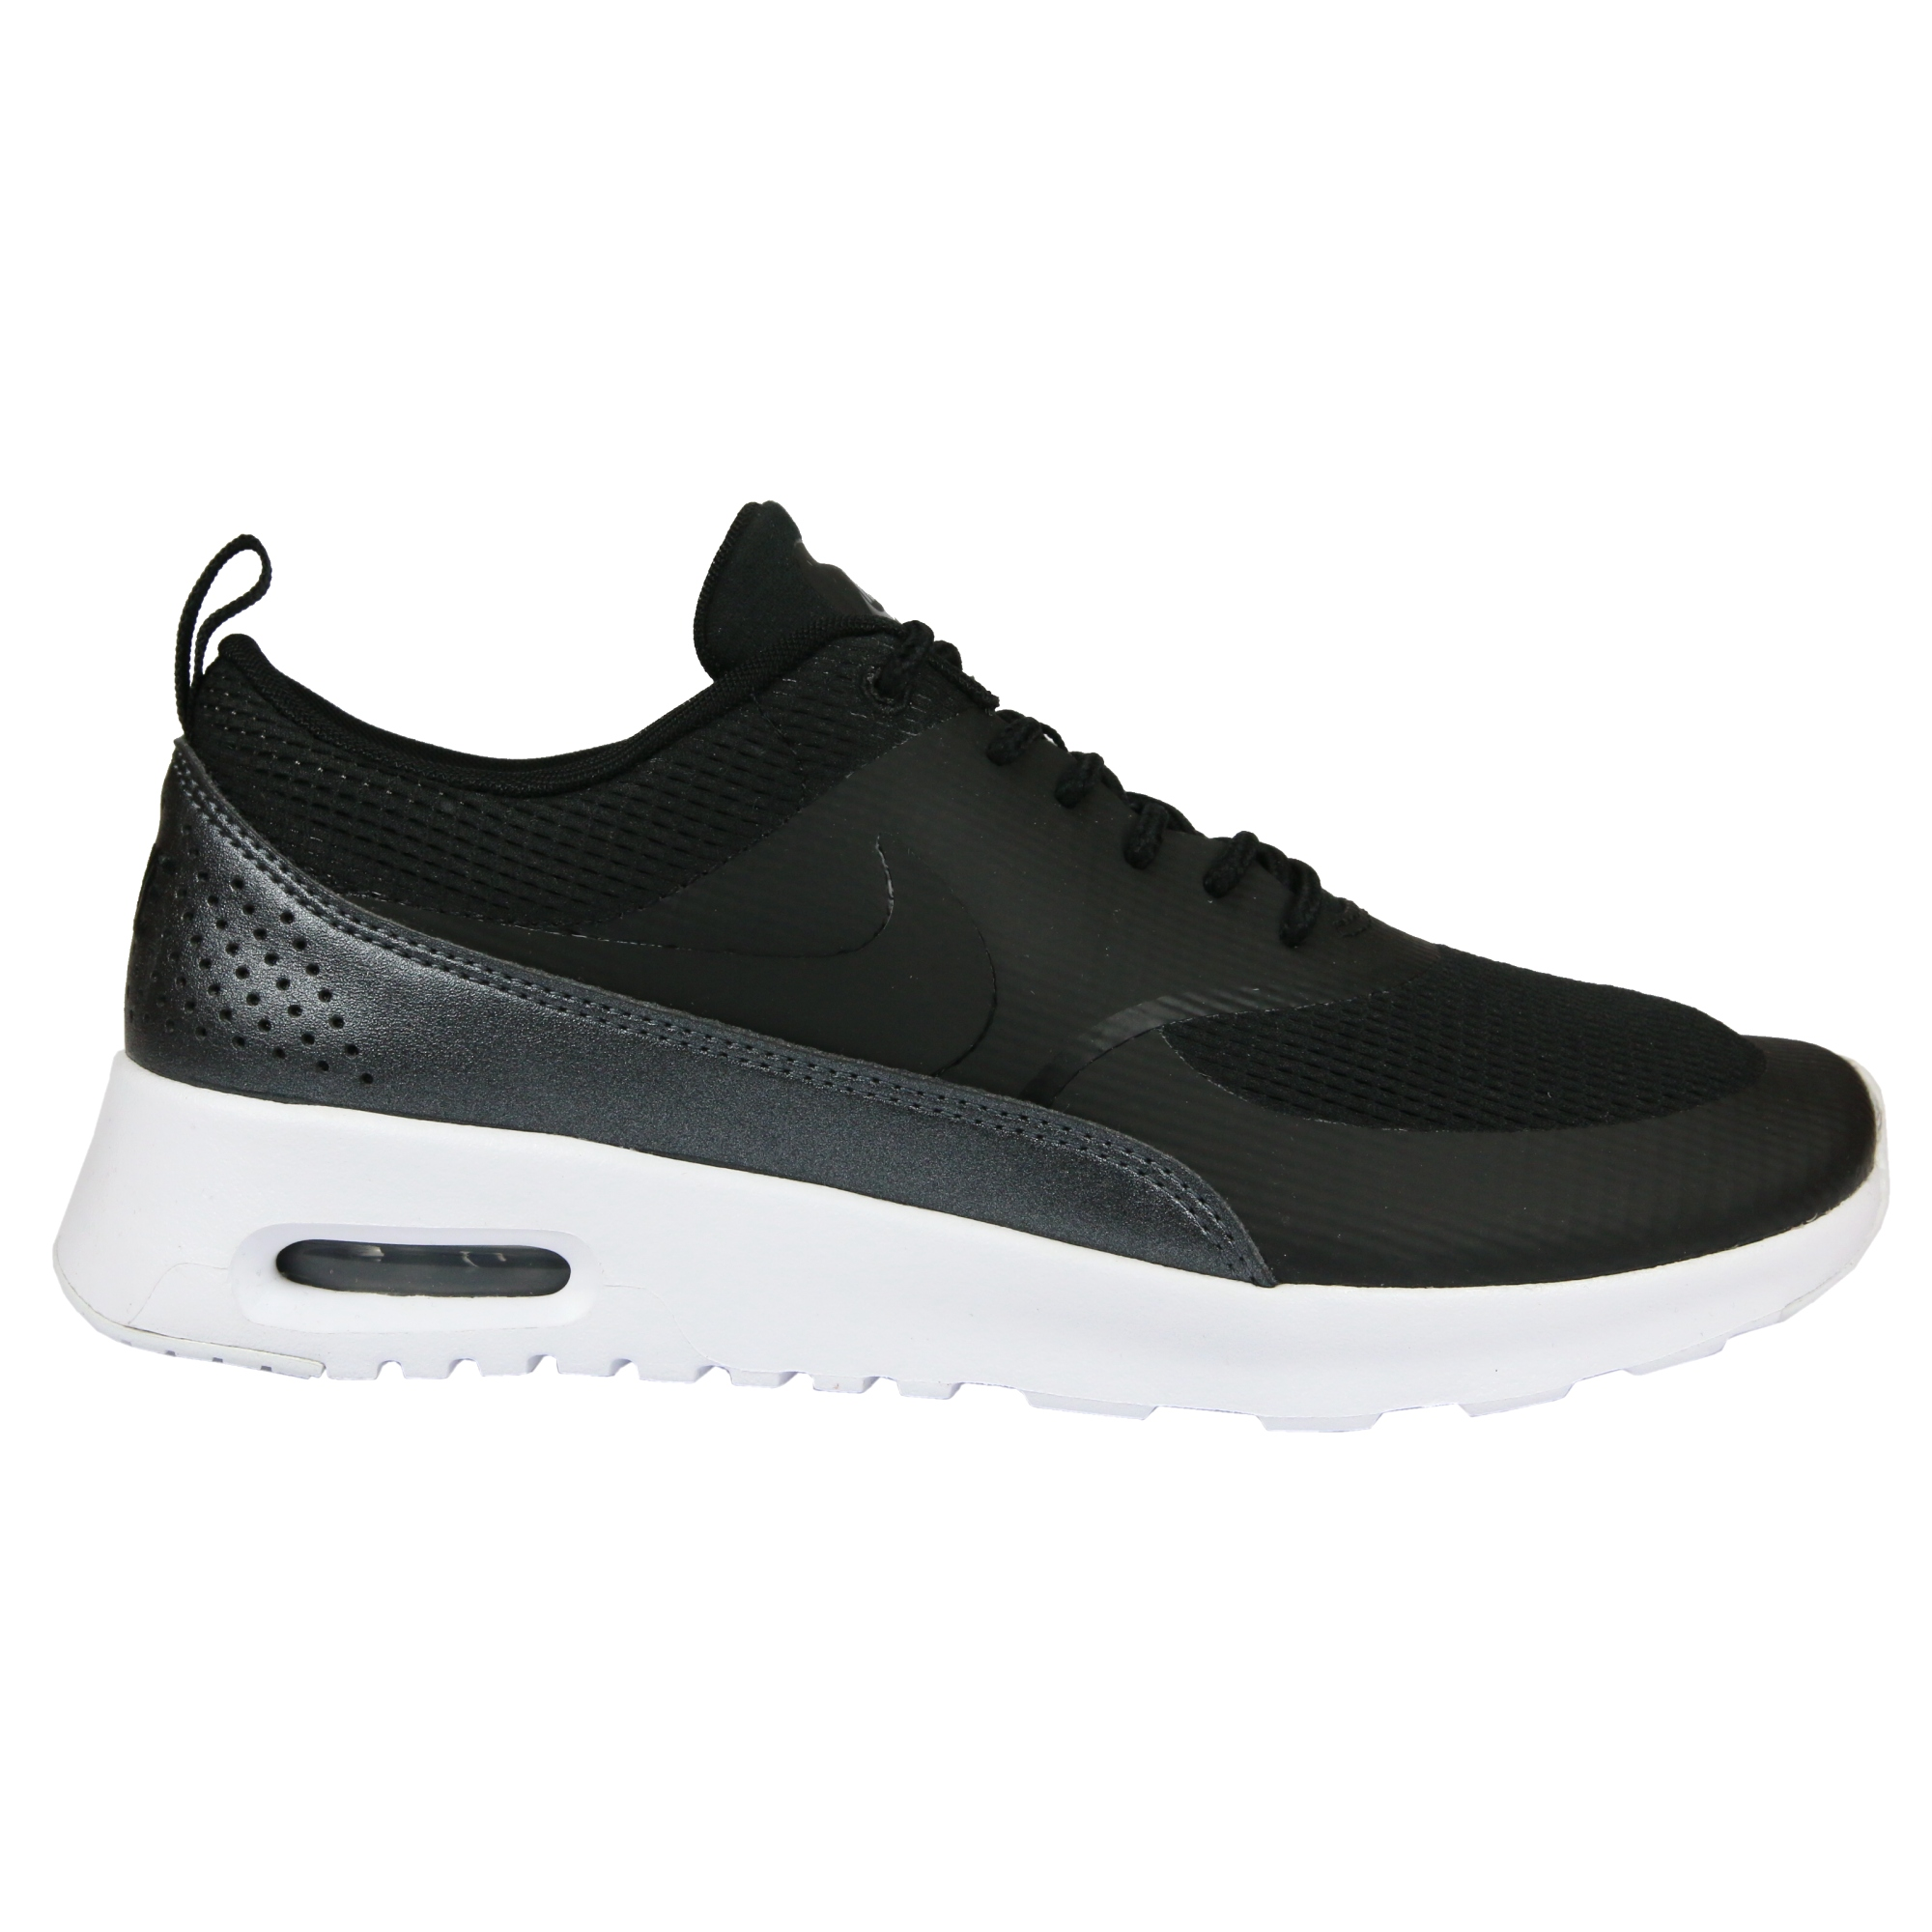 nike air max thea schuhe turnschuhe sneaker damen pink. Black Bedroom Furniture Sets. Home Design Ideas